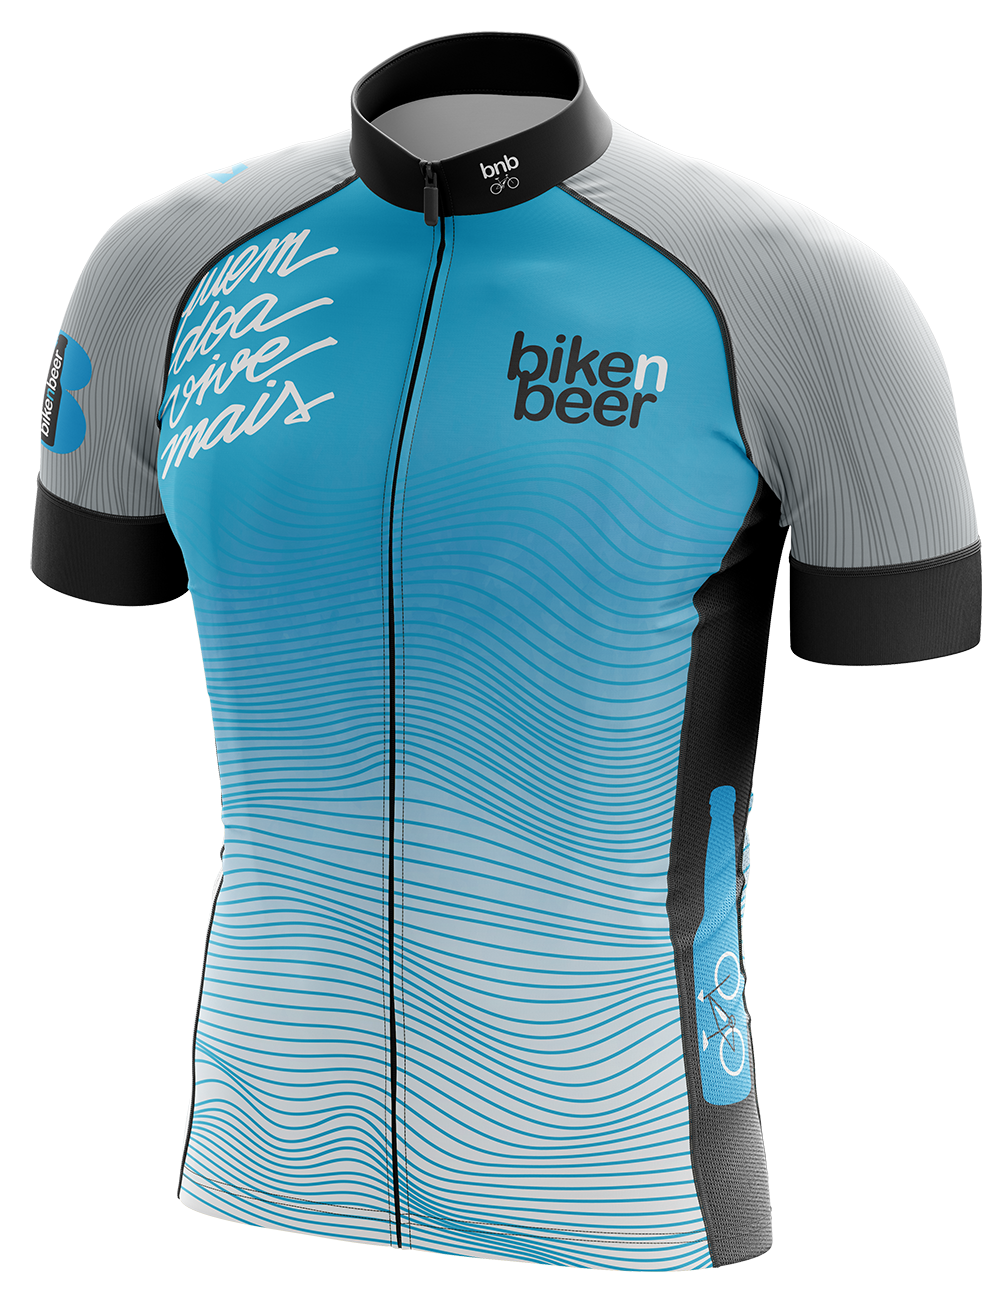 Uniforme Oficial para grupo de ciclismo Bike and Beer 2019.